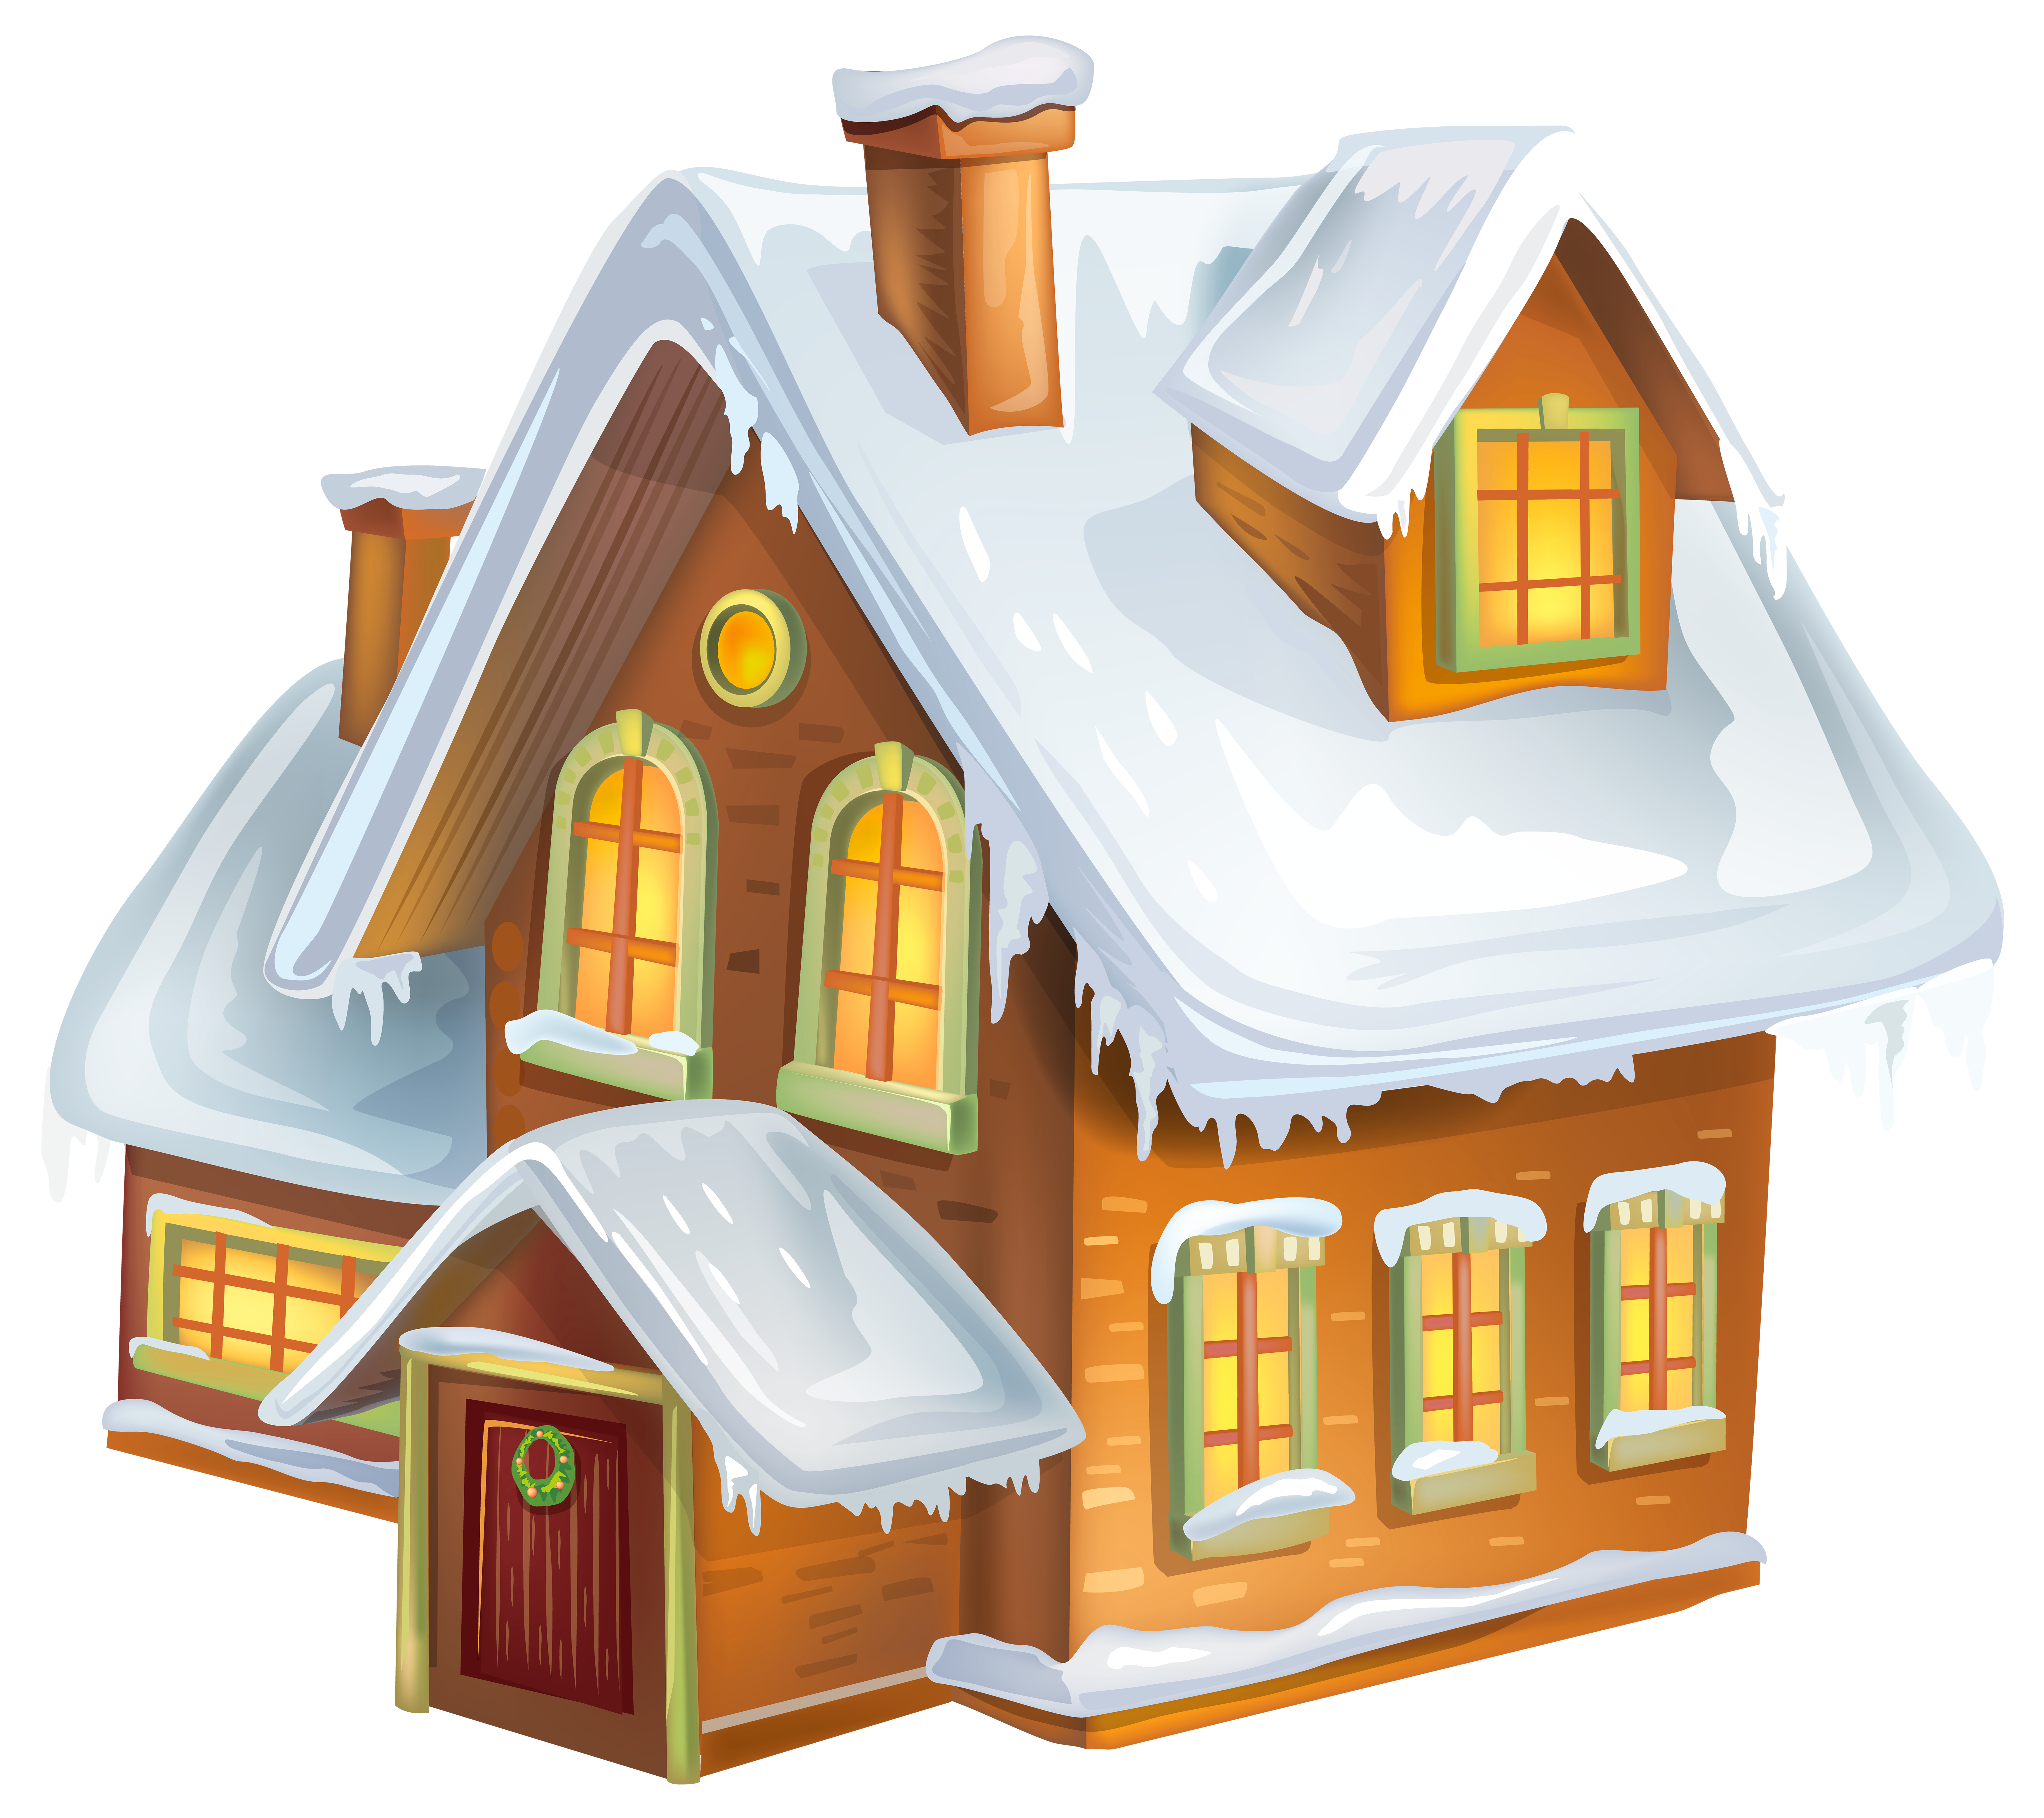 Christmas clipart with house banner transparent Christmas Winter House Transparent PNG Clip Art Image | Gallery ... banner transparent